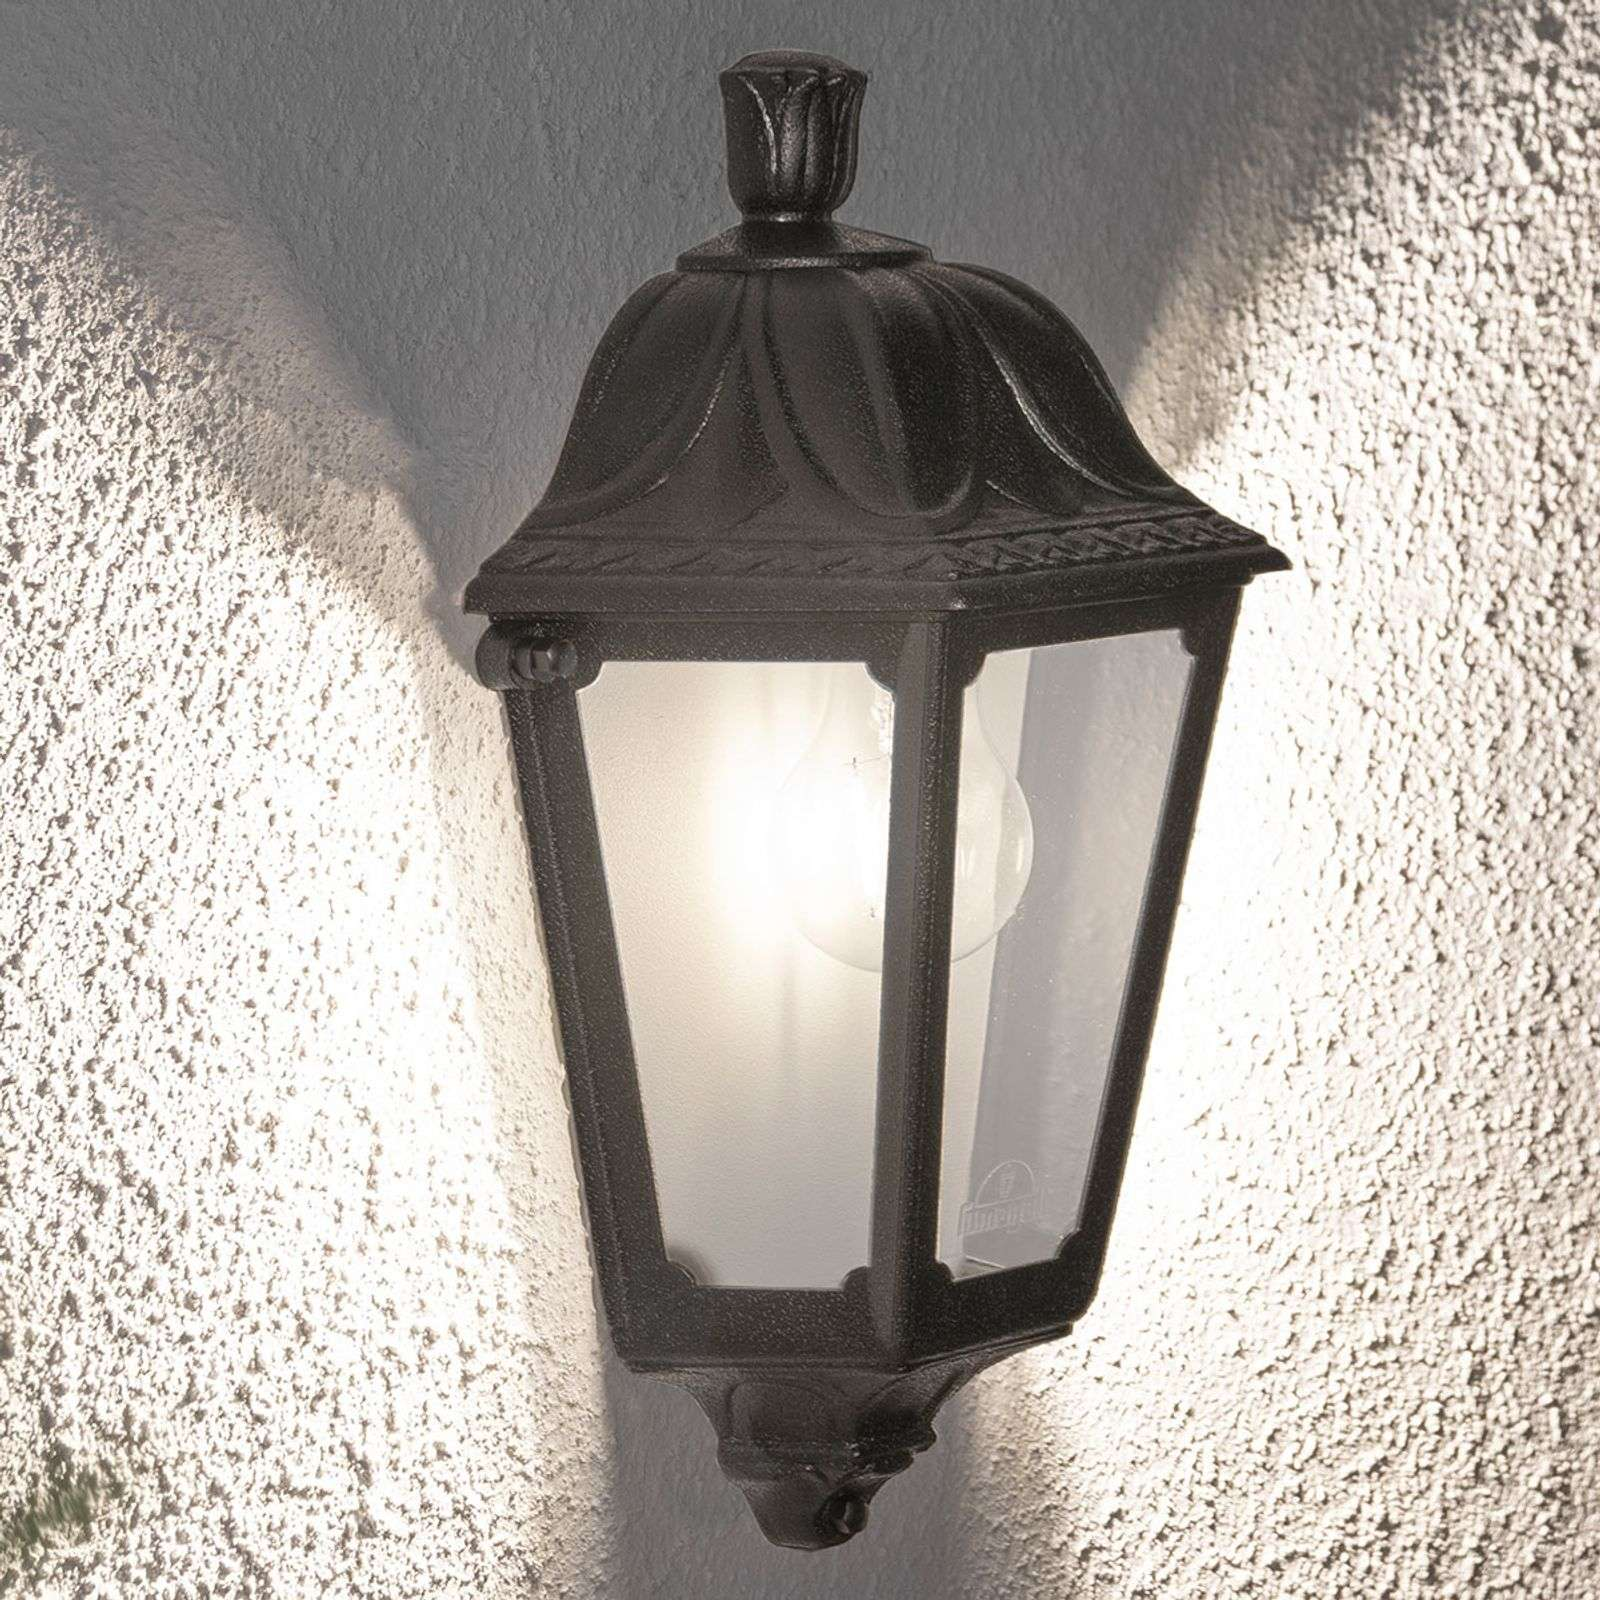 Applique da esterni LED Iesse nera, aree costiere